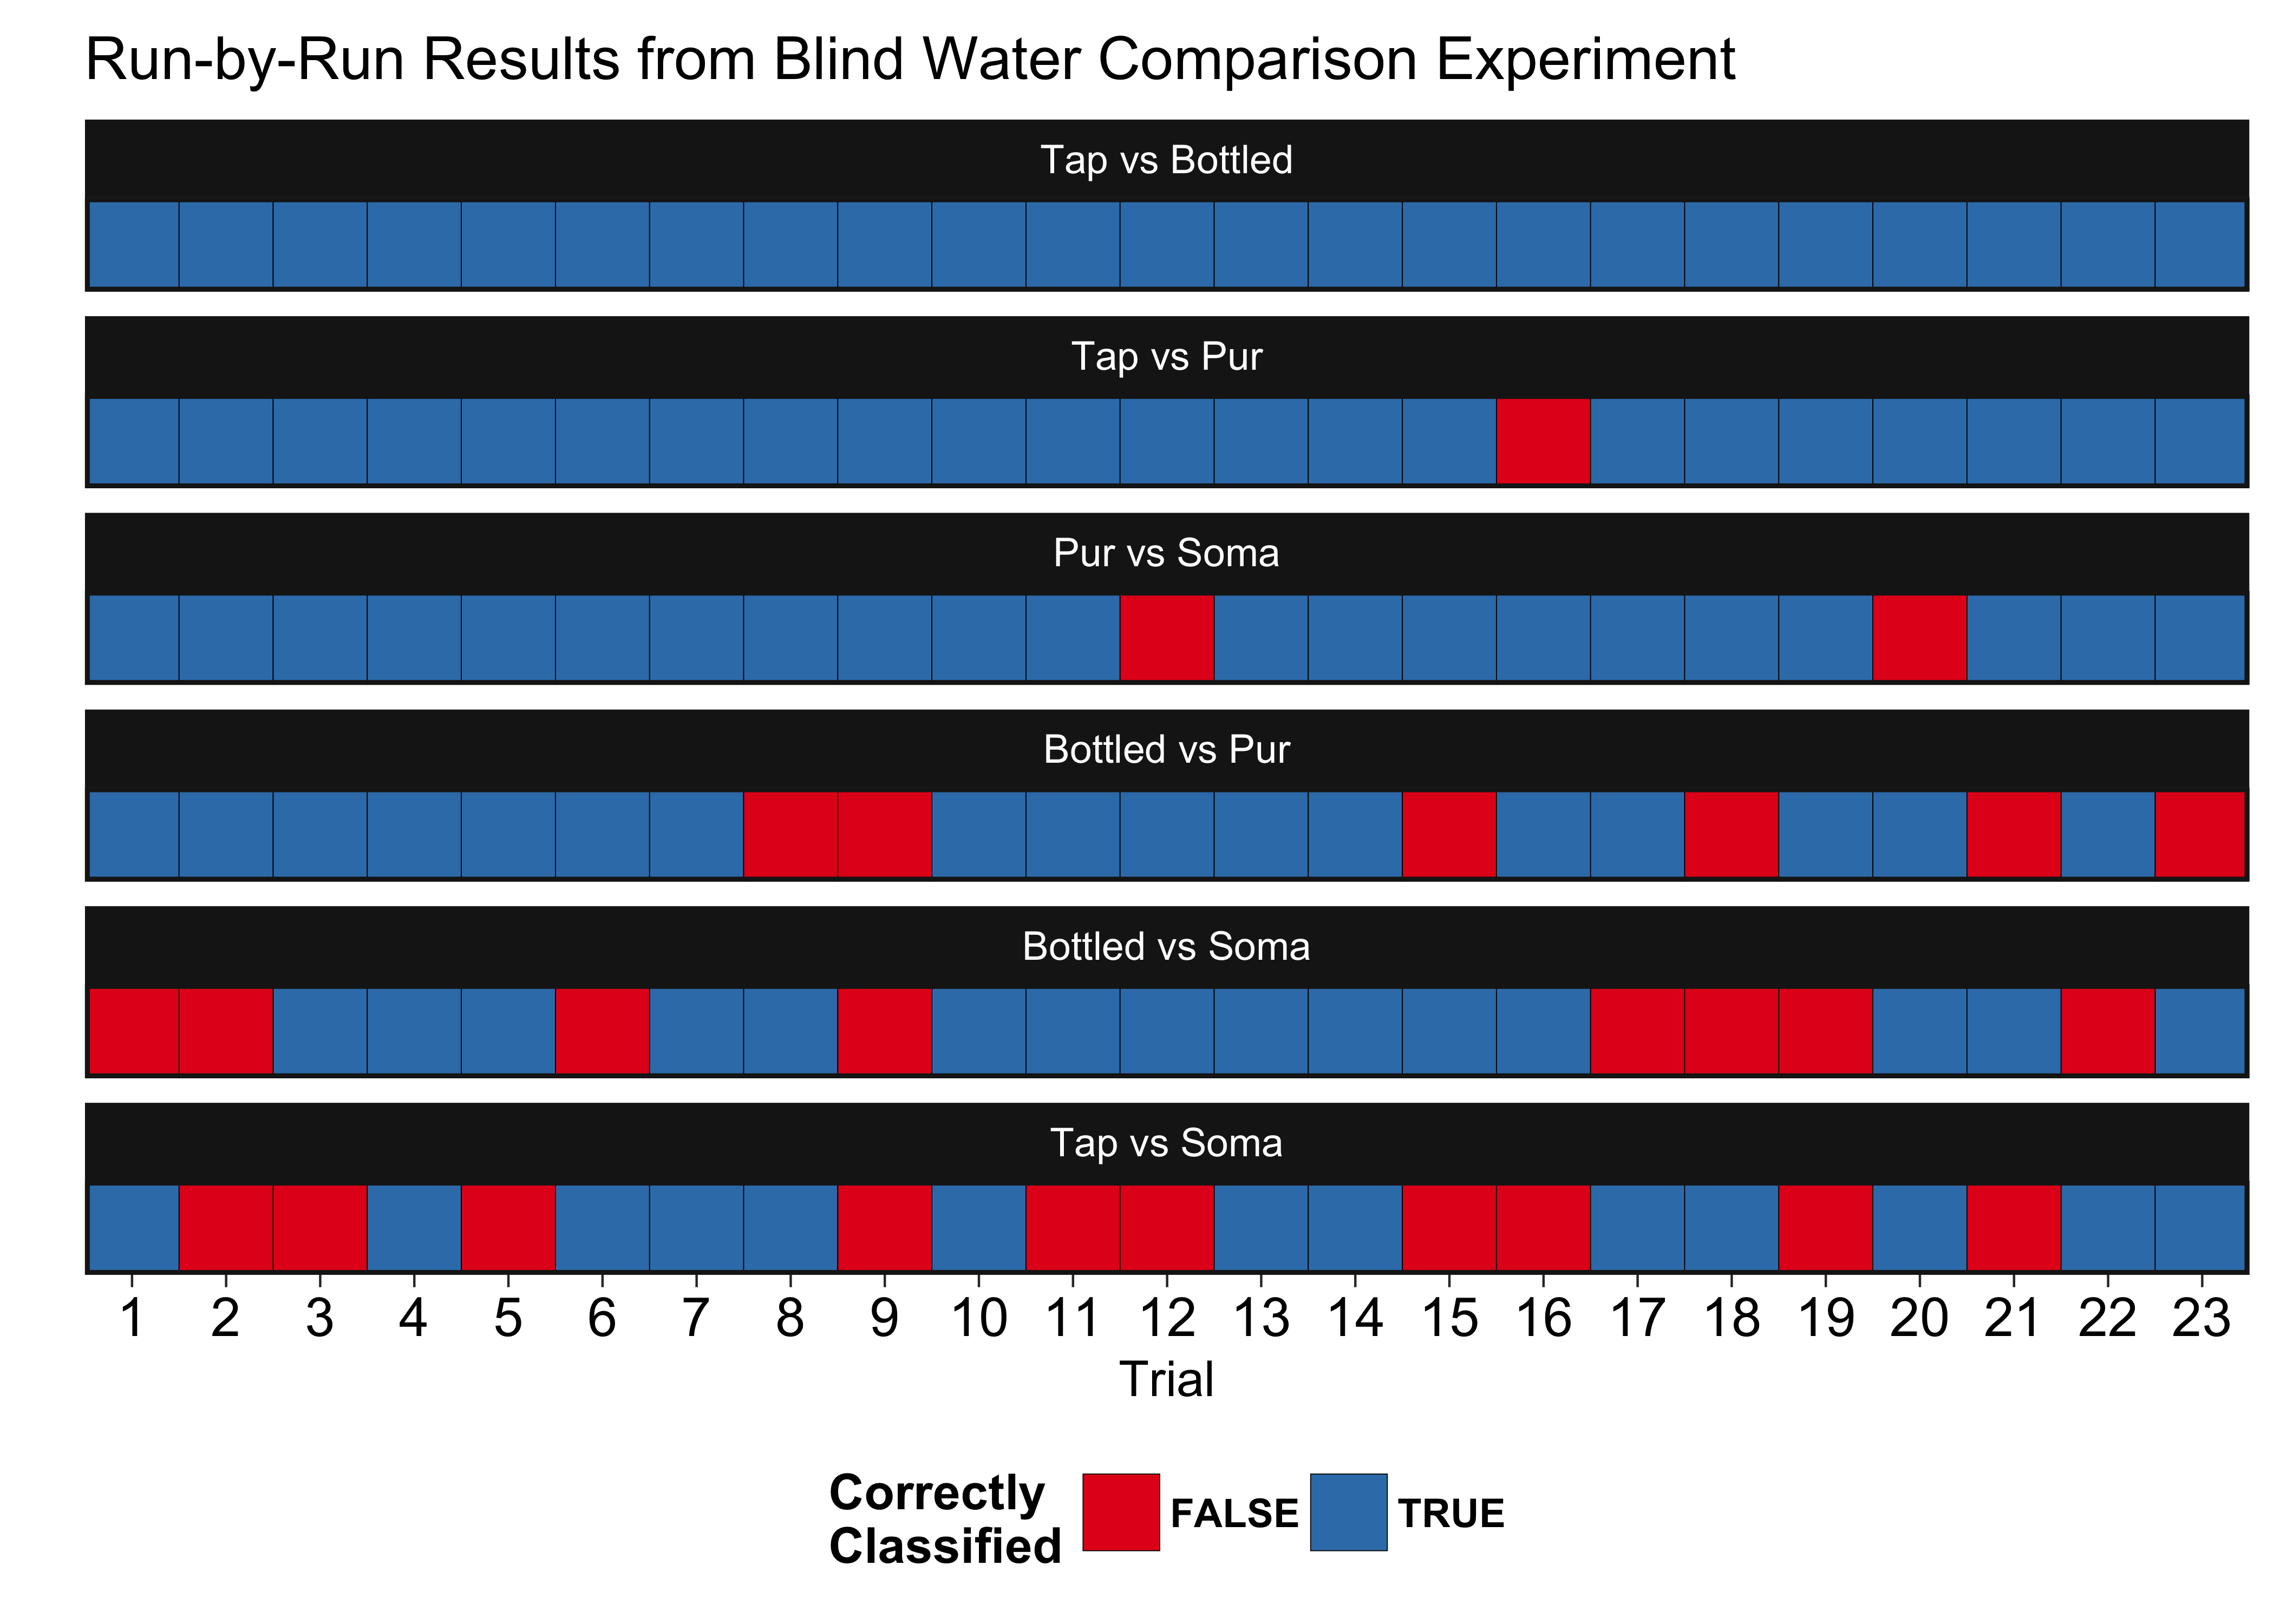 Soma Water Filters Are Worthless: How I Used R To Win An Argument